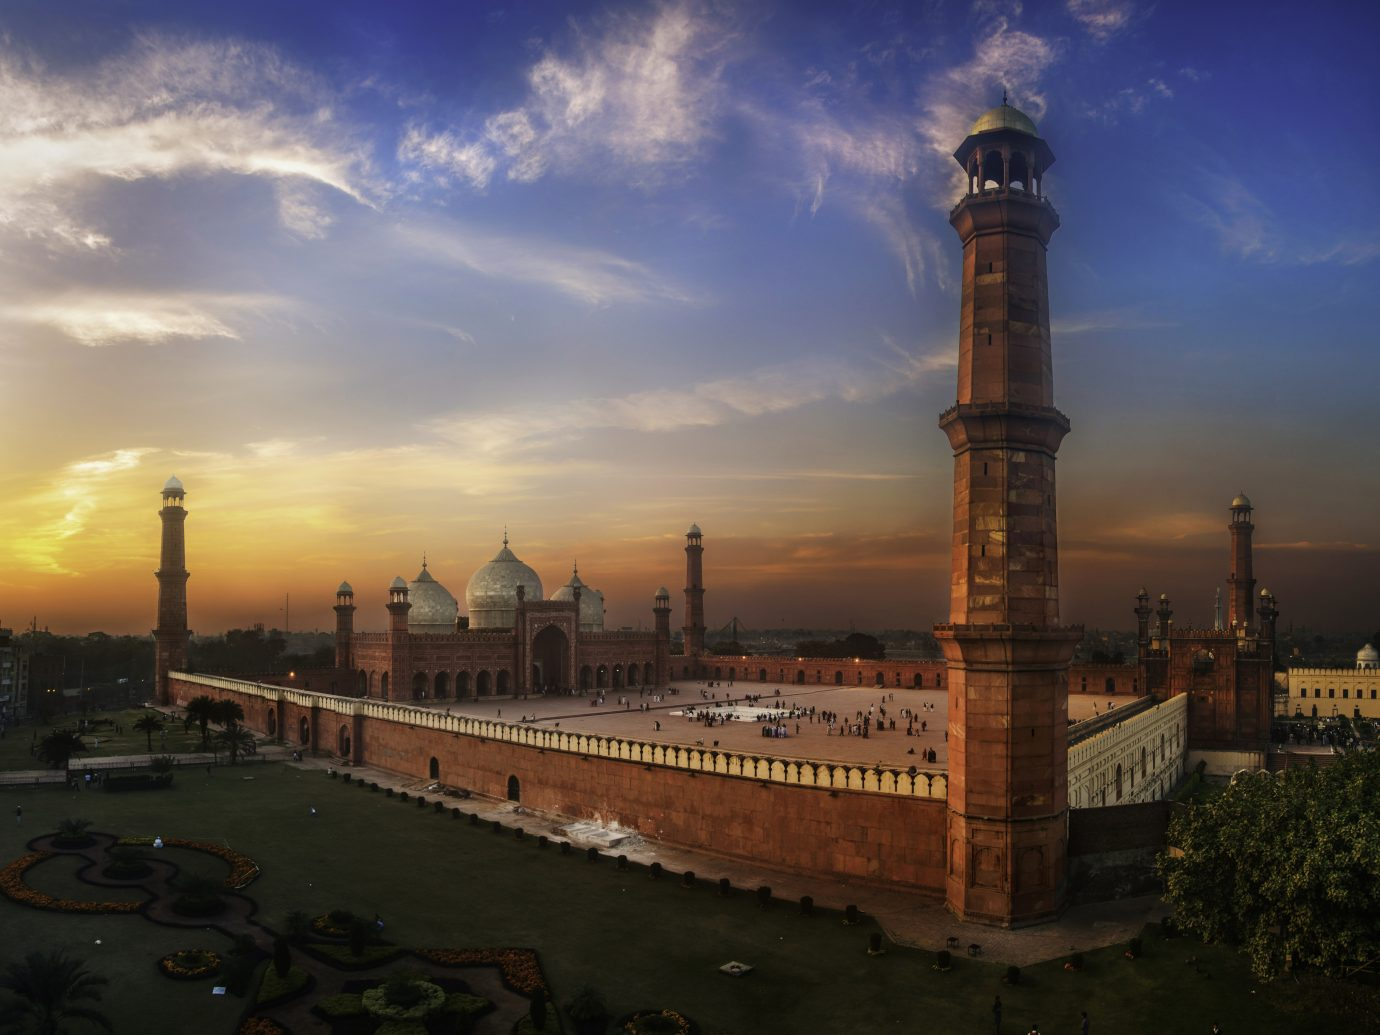 "The Badshahi Mosque or ""Imperial Mosque"" is a Mughal era mosque in Lahore, capital of the Pakistani province of Punjab. The mosque is located west of Lahore Fort along the outskirts of the Walled City of Lahore. The mosque is widely considered to be one of Lahore's most iconic landmarks."